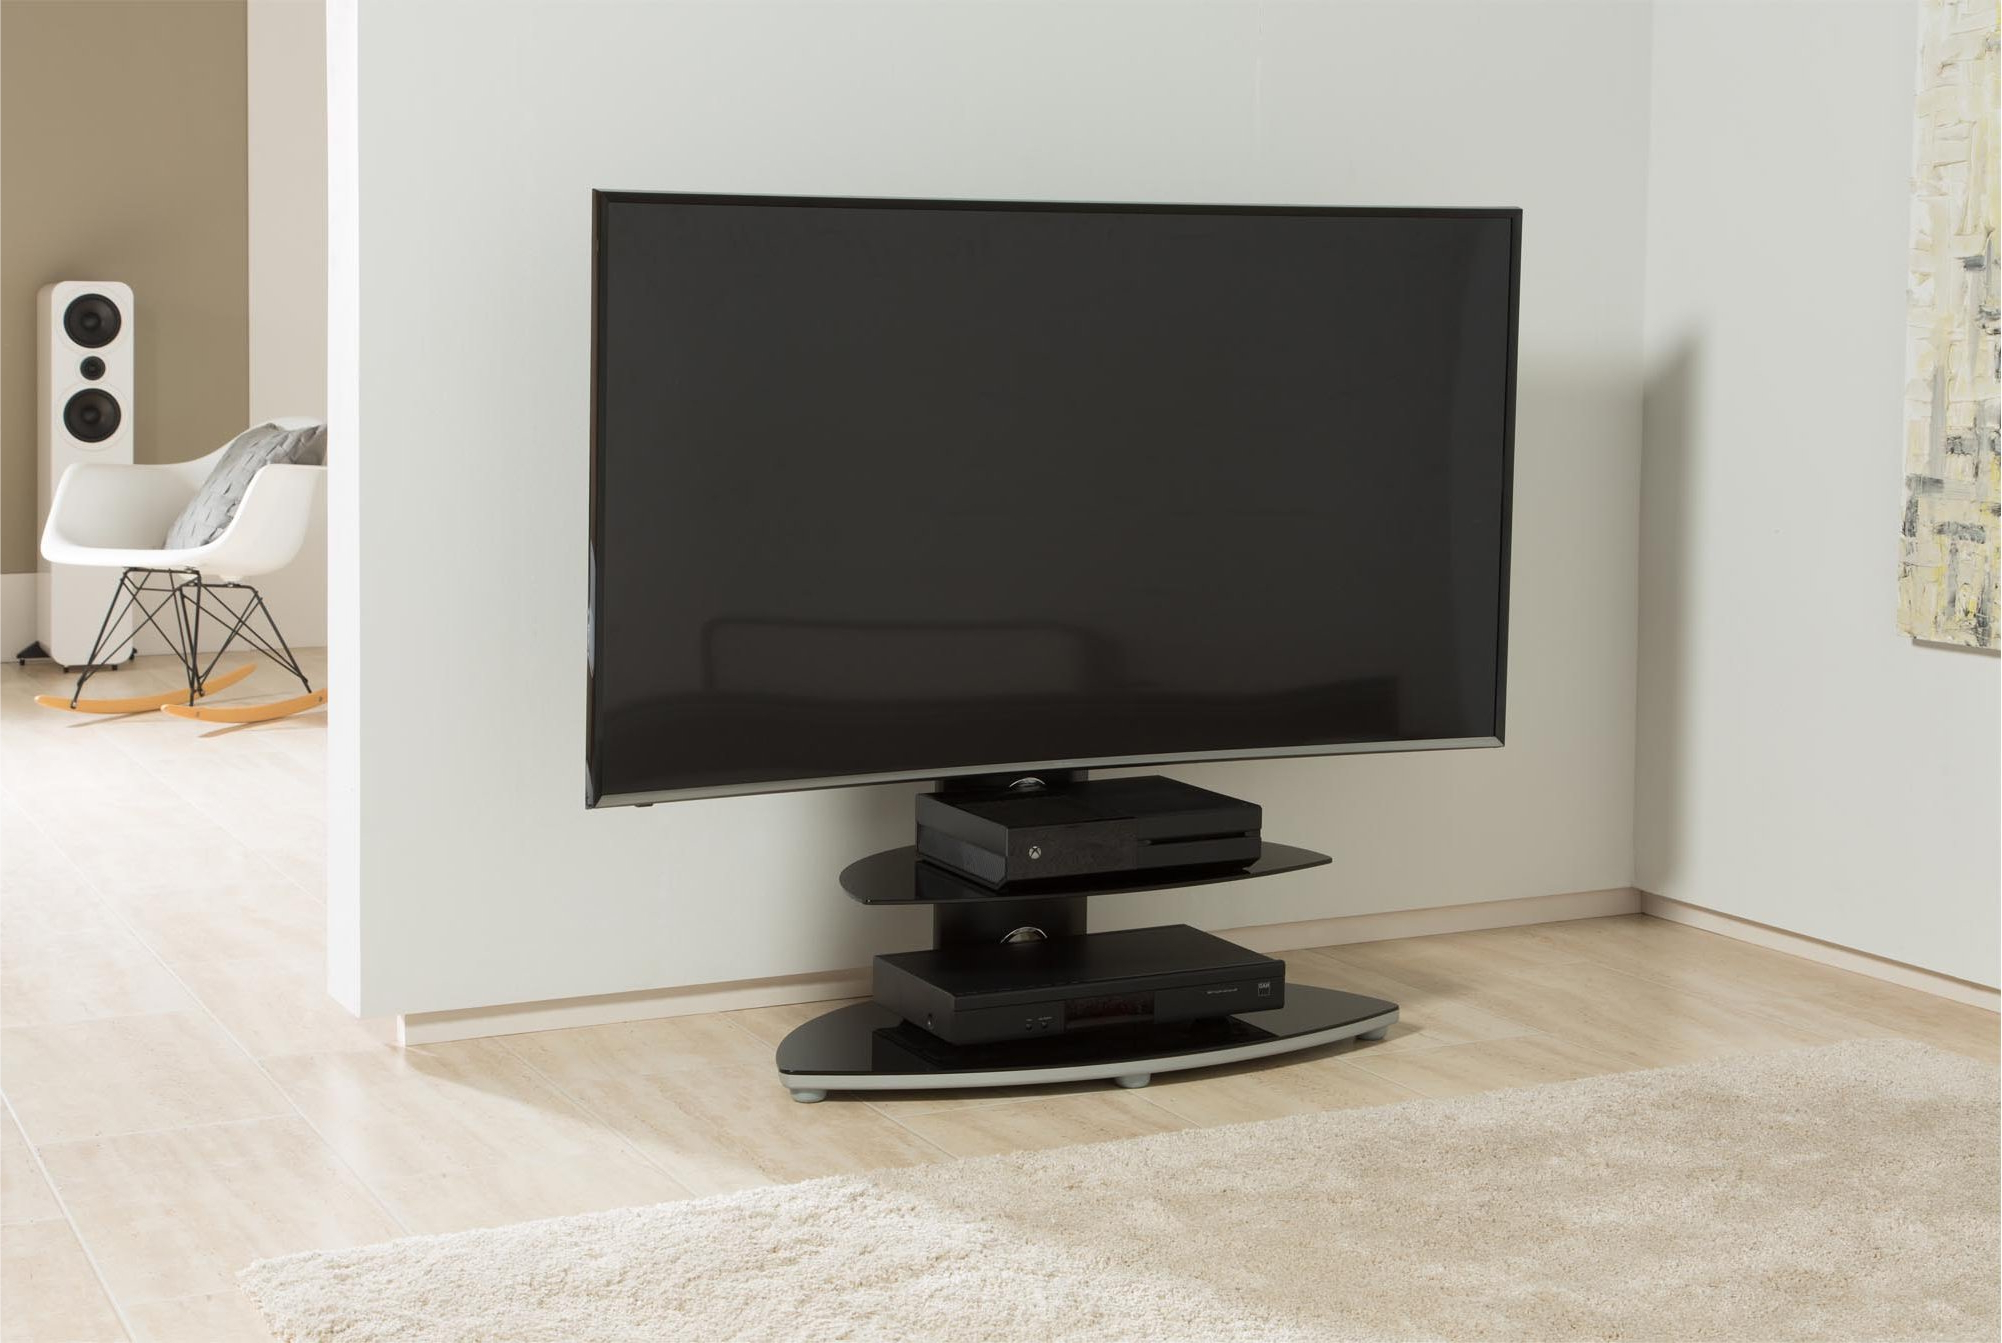 Bracketed Tv Stands Throughout Most Up To Date Alphason Osmb800/2 S Tv Stands (View 11 of 20)